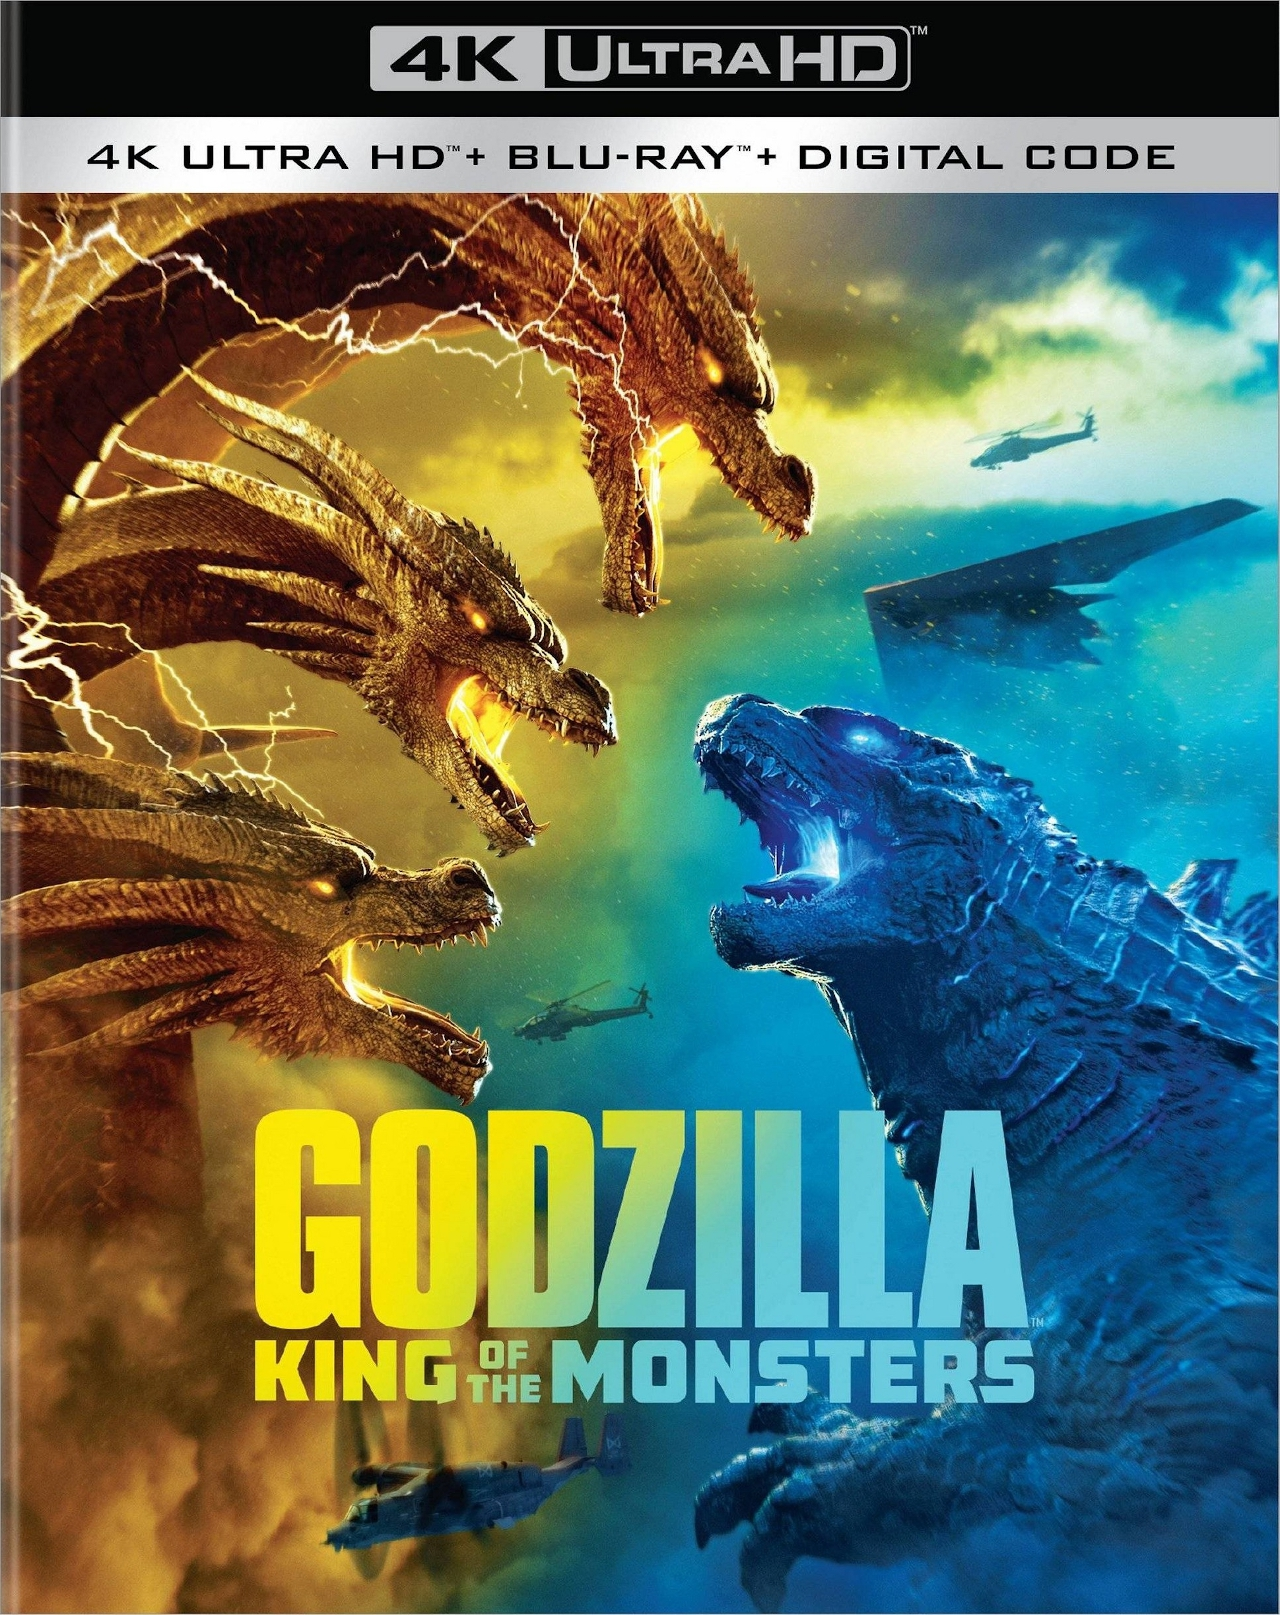 Godzilla 2 4K UHD - Best 4K Blu-ray Monster Movies